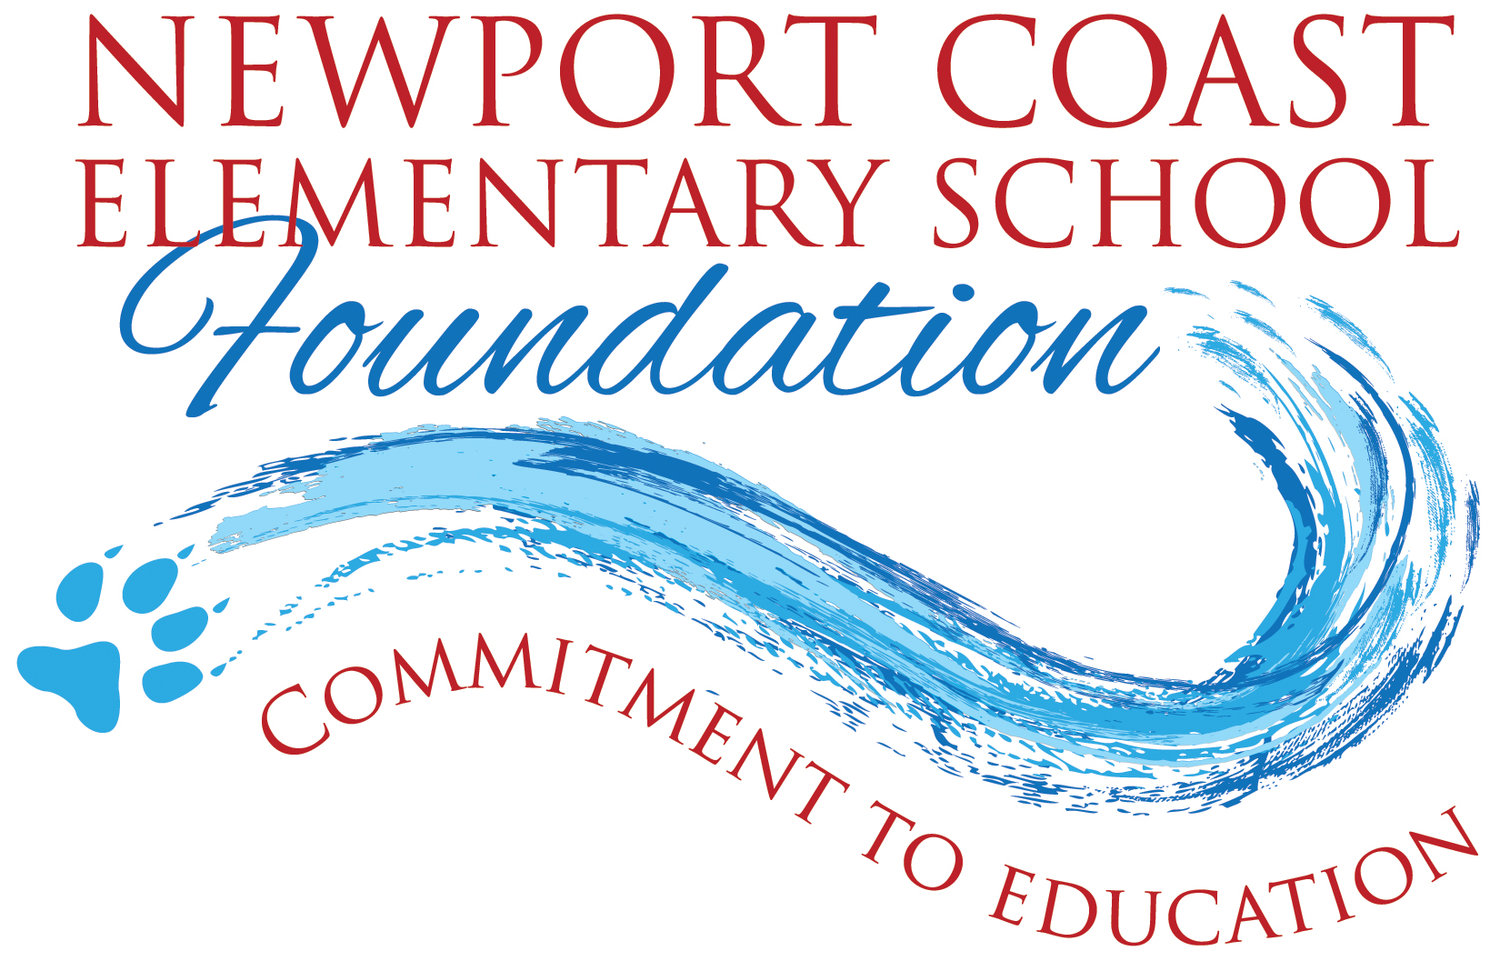 Newport Coast Elementary School Foundation